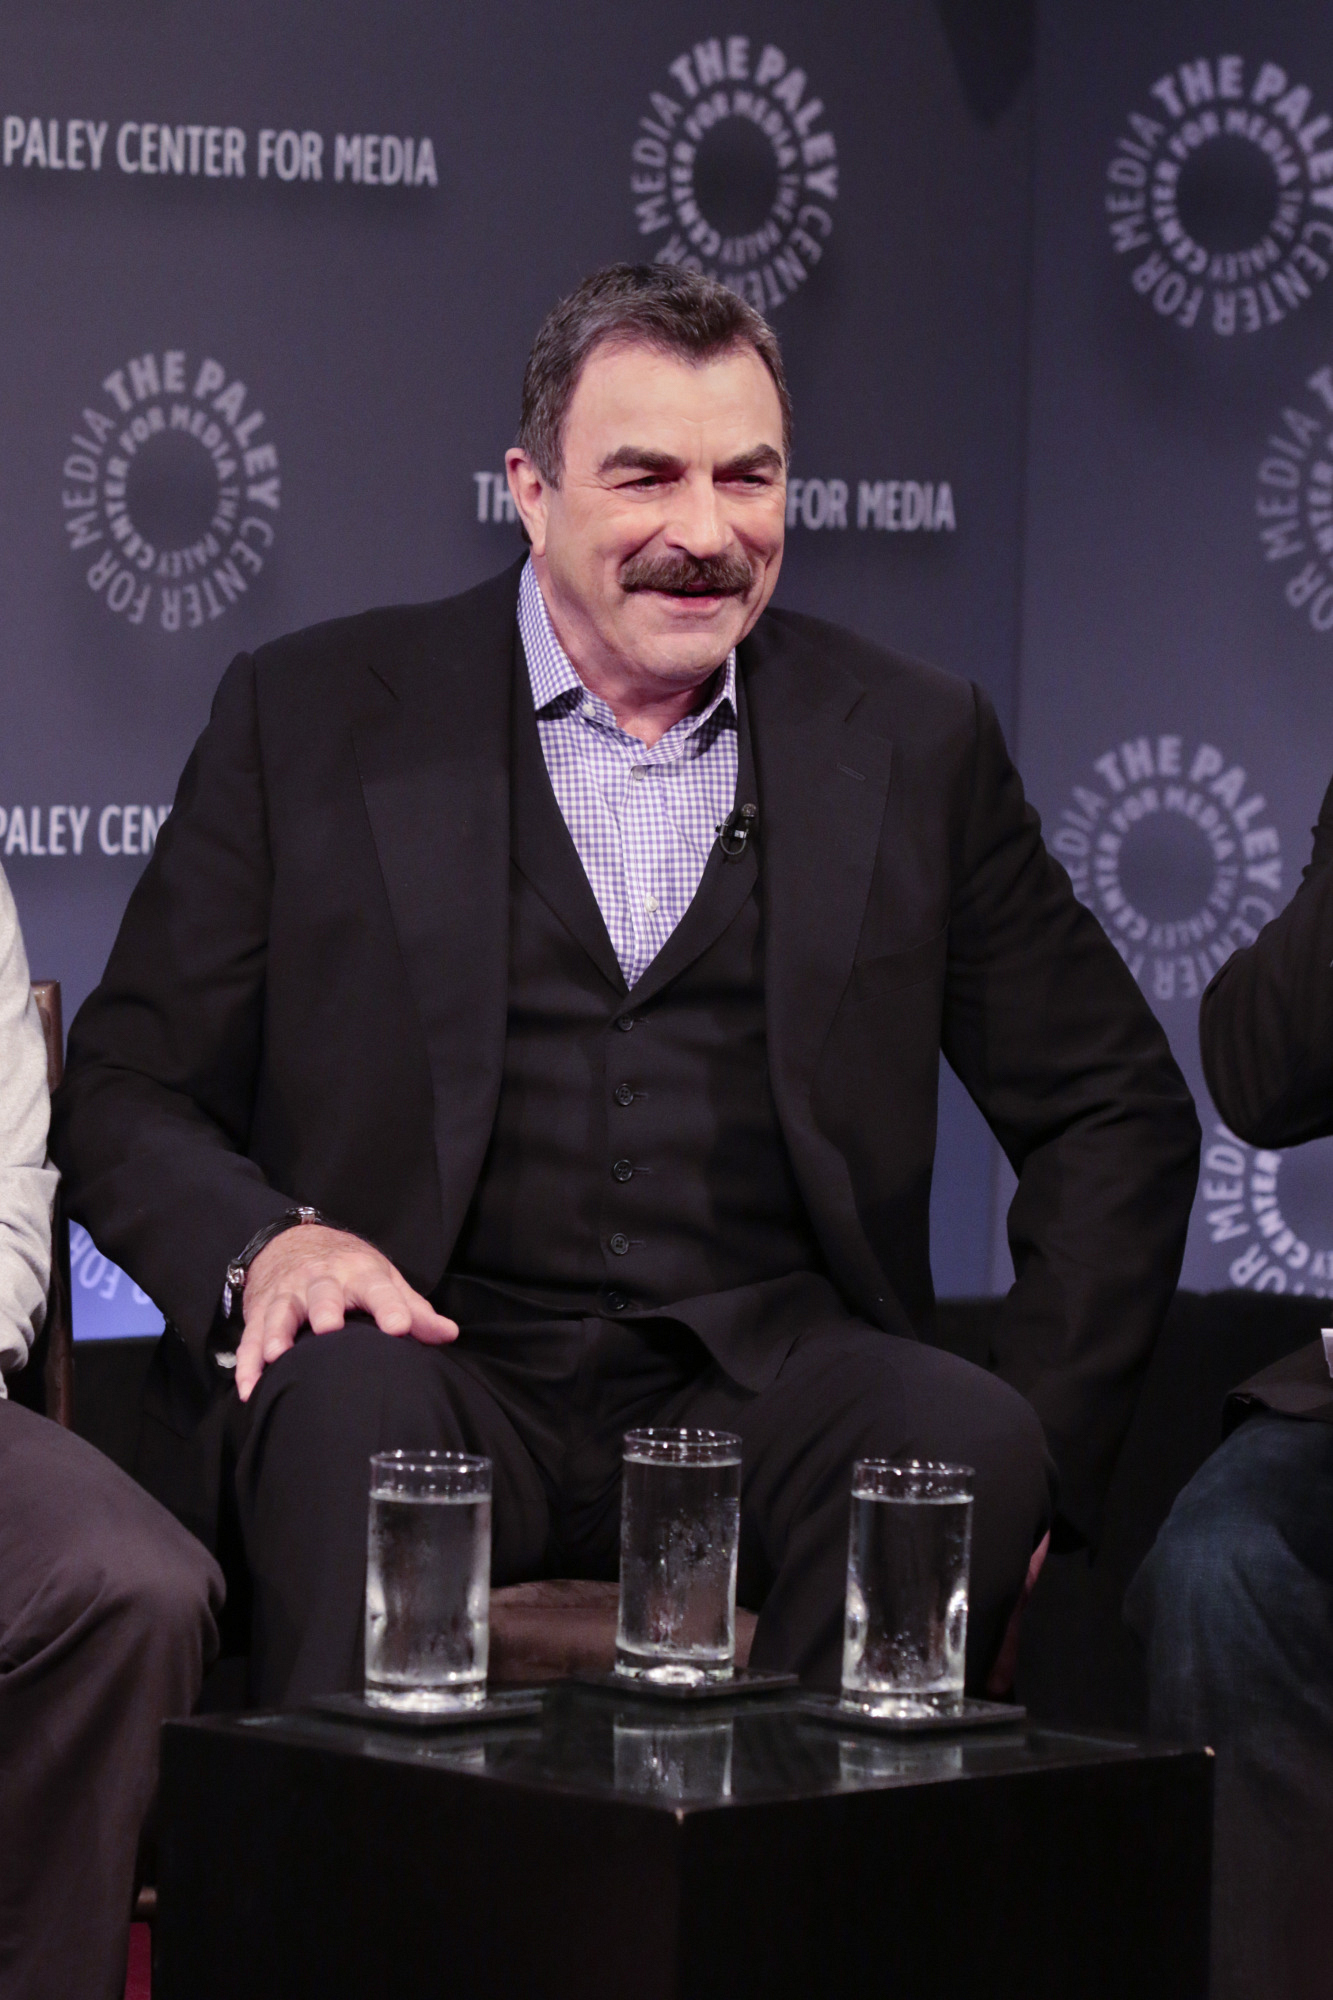 11. Tom Selleck might be drinking three waters.